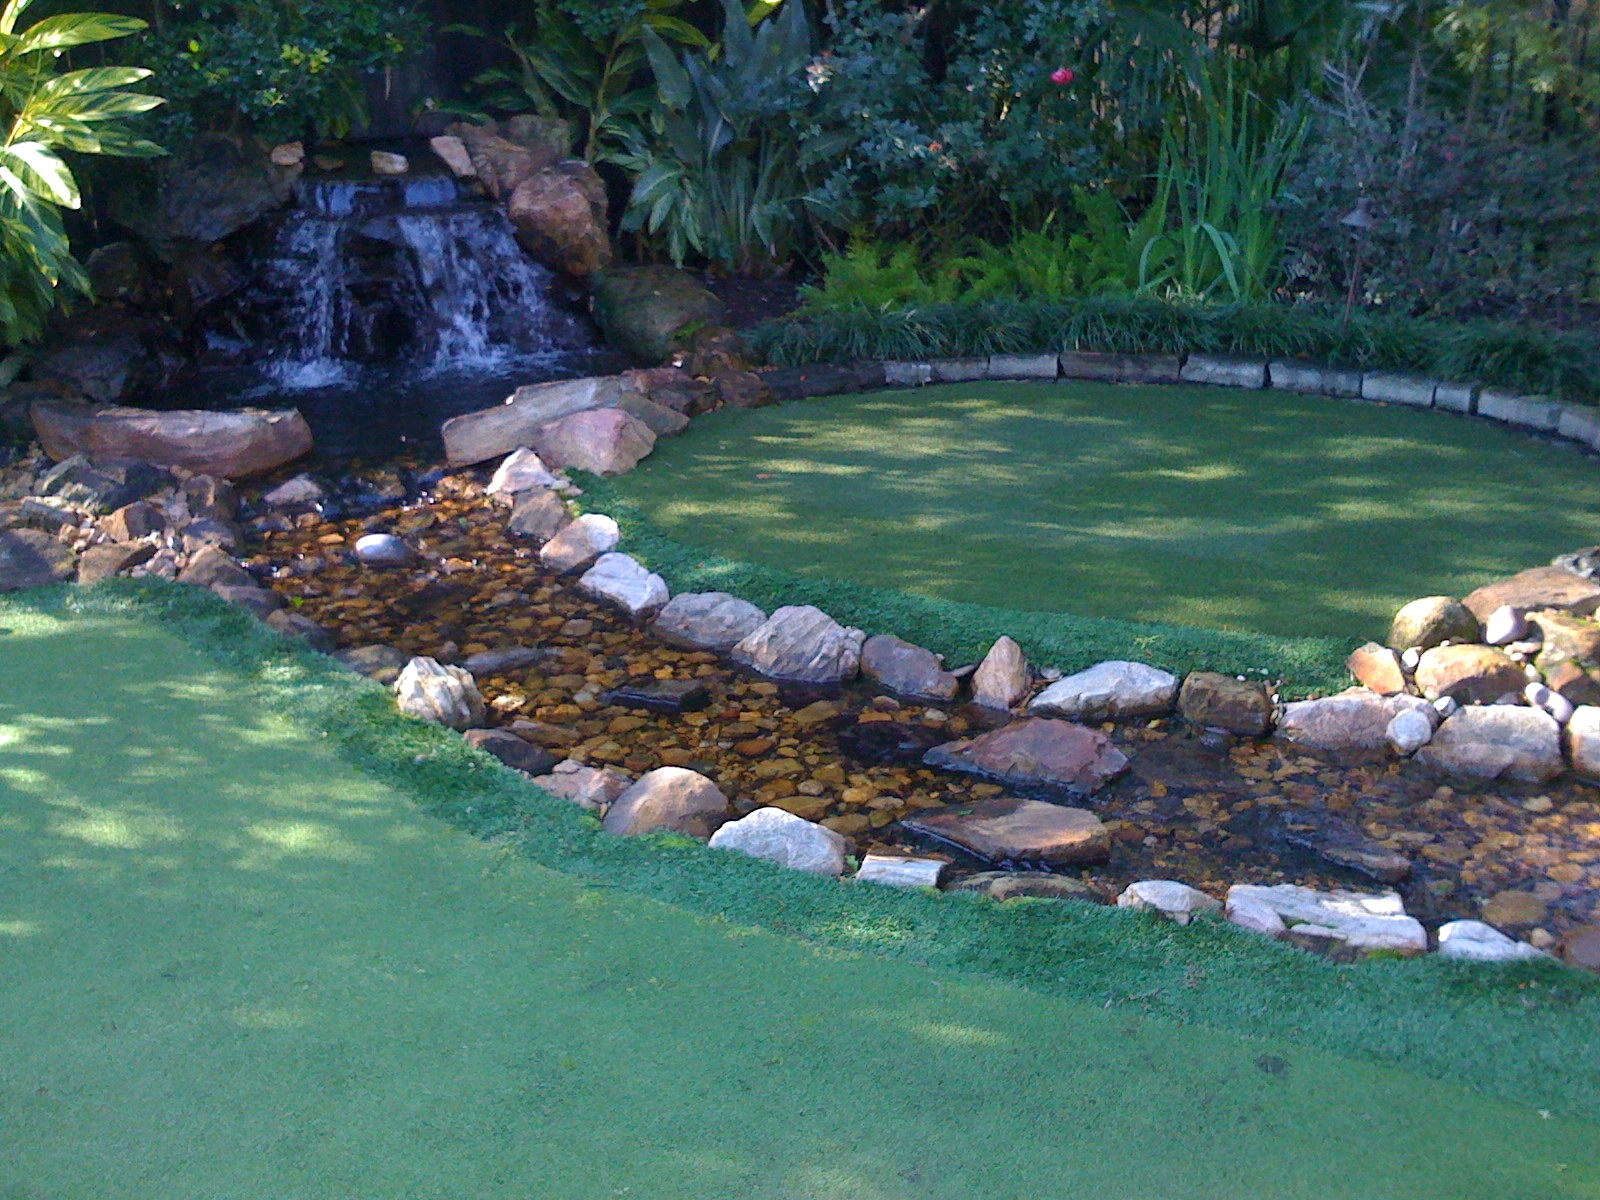 How To Build A Putting Green In My Backyard want to build an indoor or outdoor golf putting green? get your best